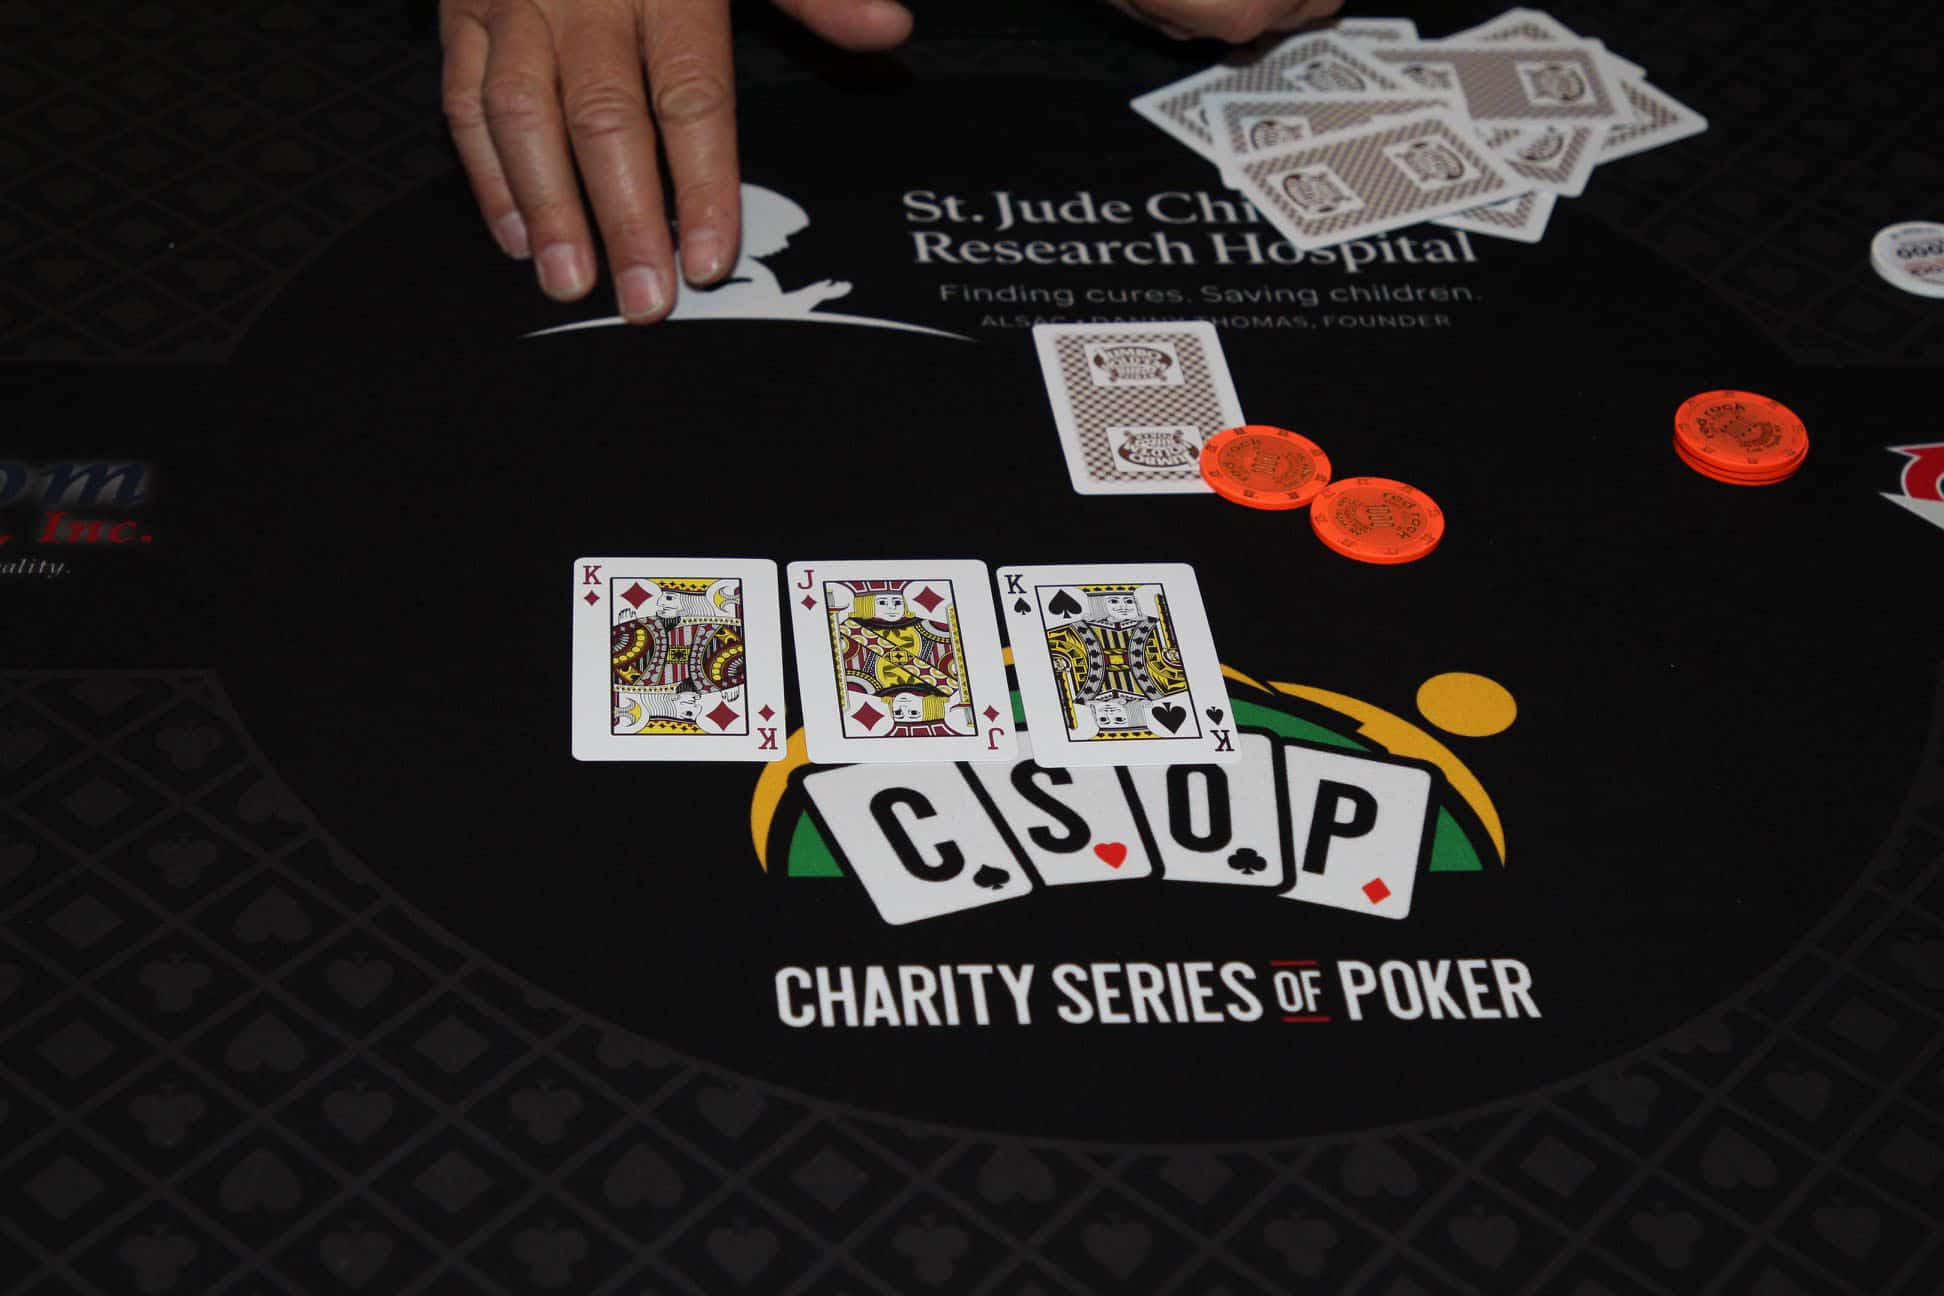 Photo of Charity Series of Poker on its way to organize the grand Rivers Casino on August 29